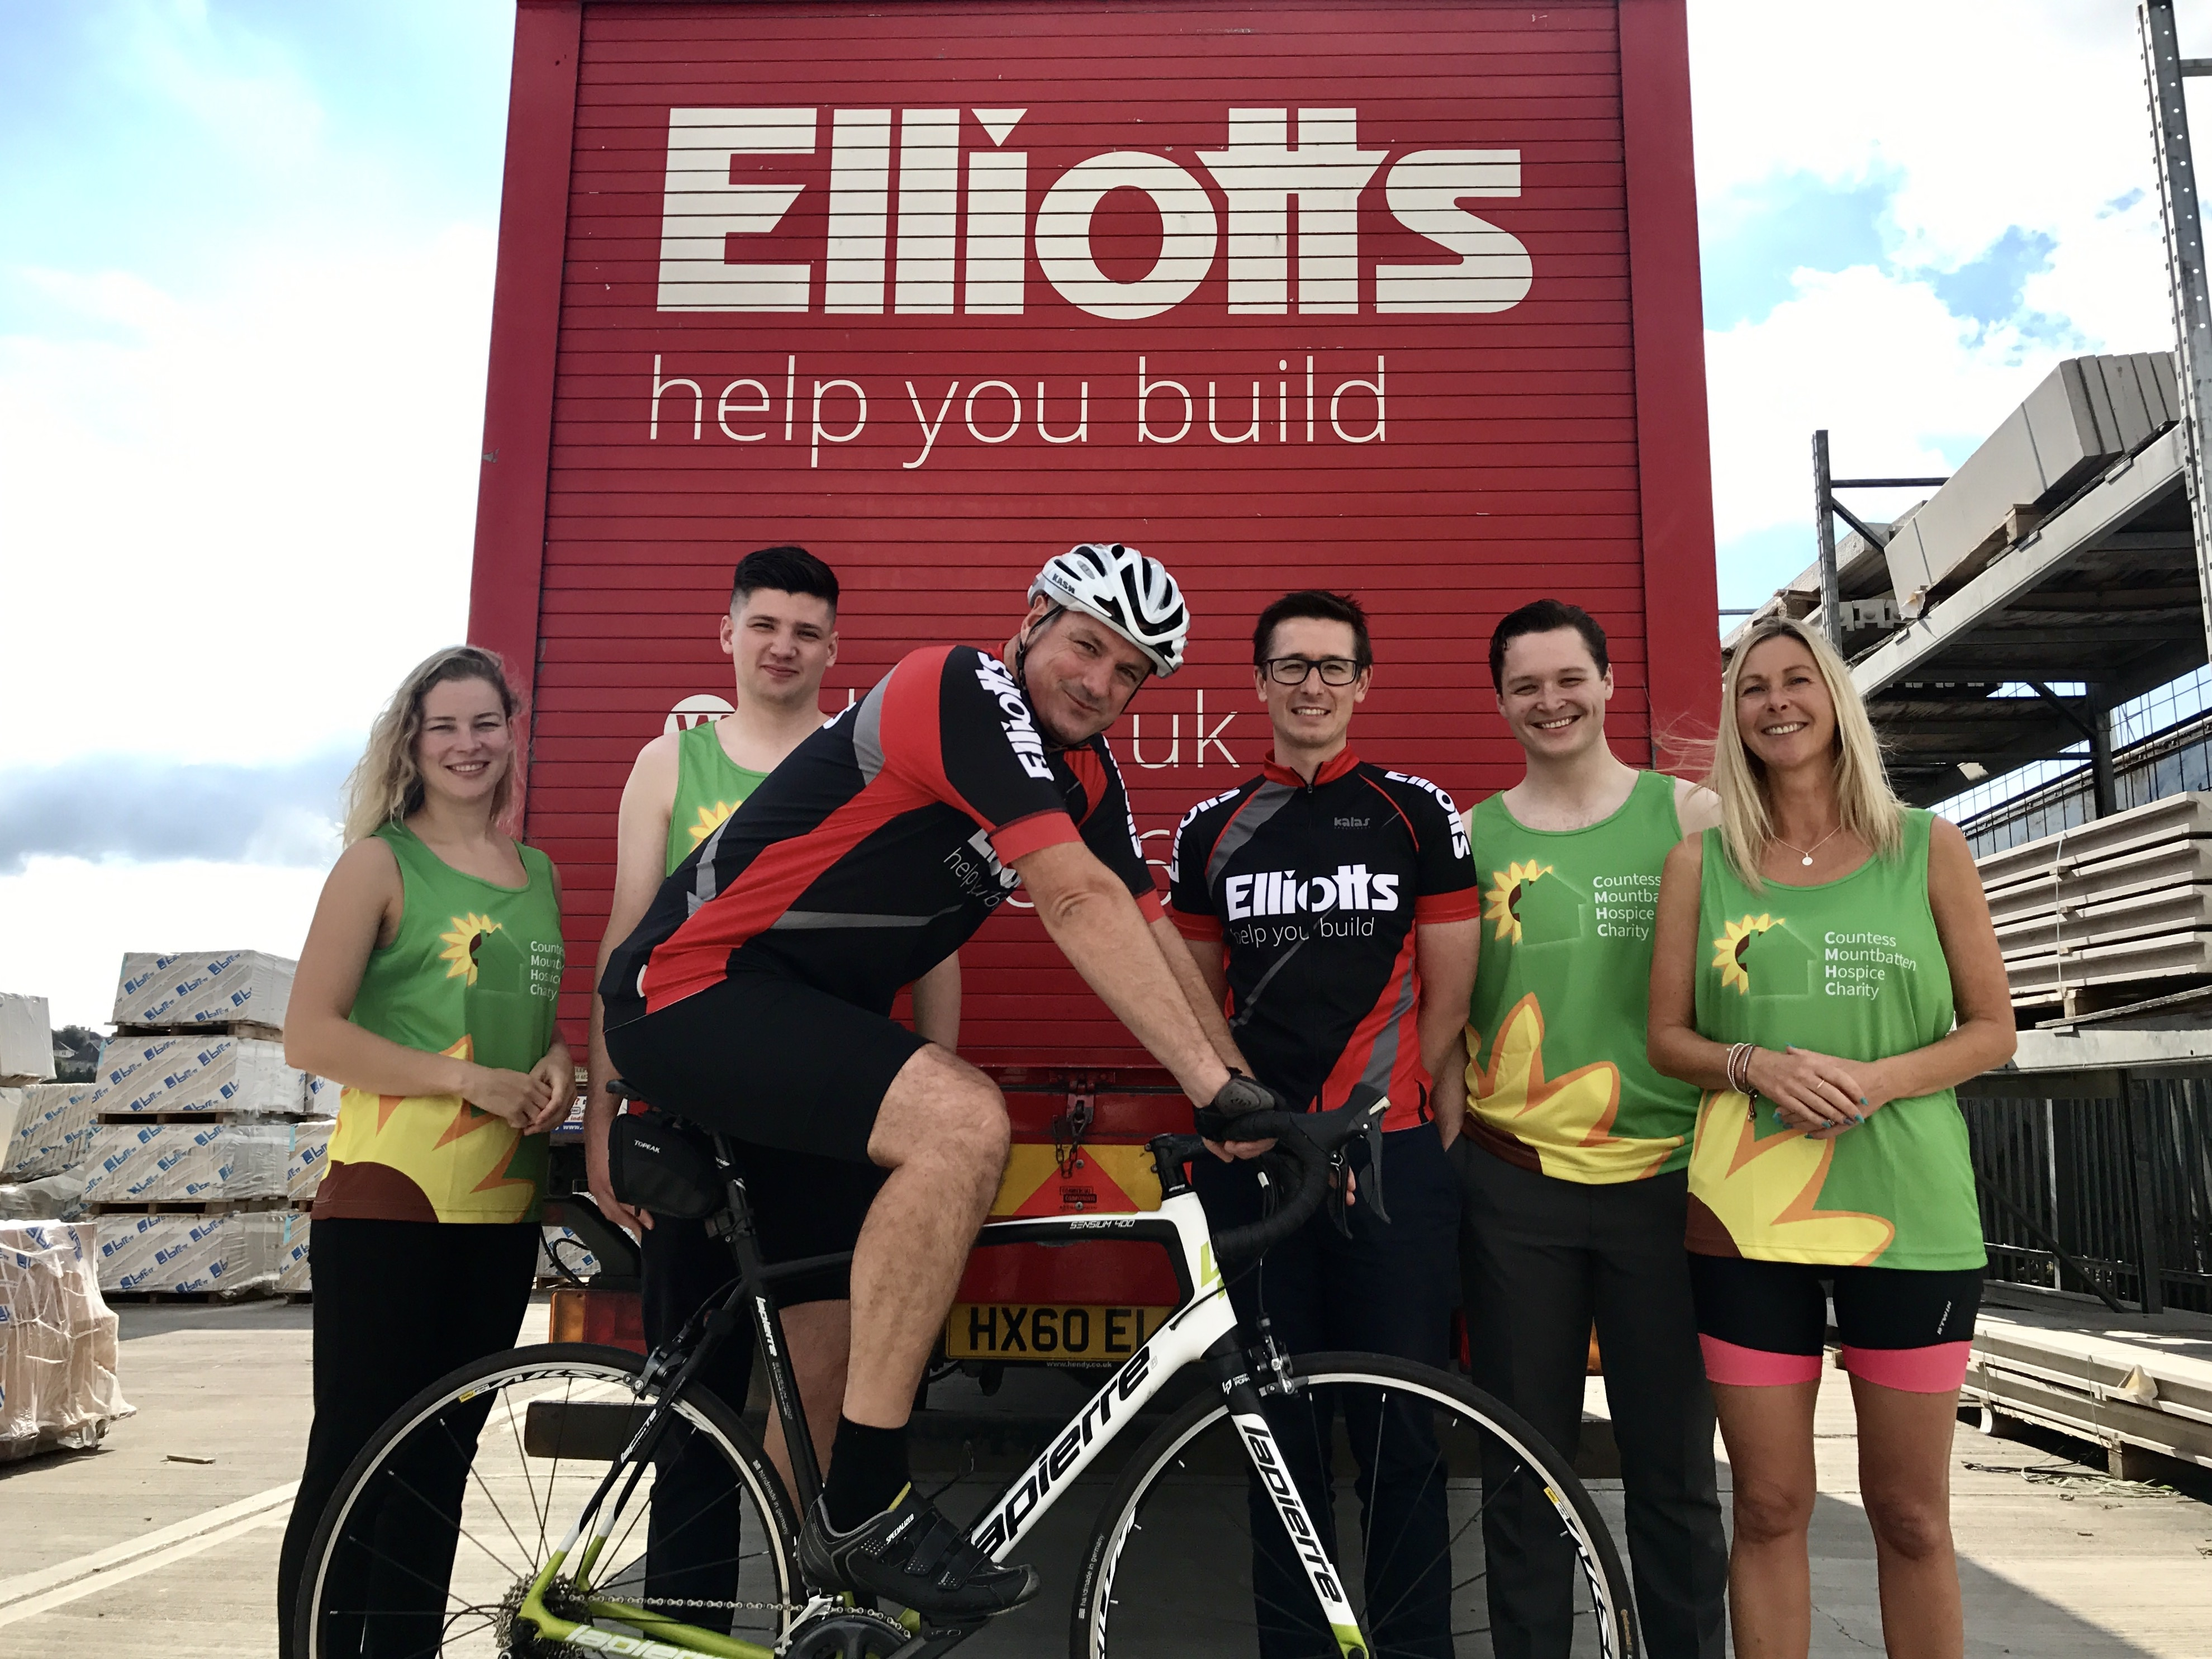 Half of Team Elliotts, from left to right - Adriana Walter, Simon Mattock, Steve Thomas, Steven Webber, Luke Hawkins and Sarah Galton